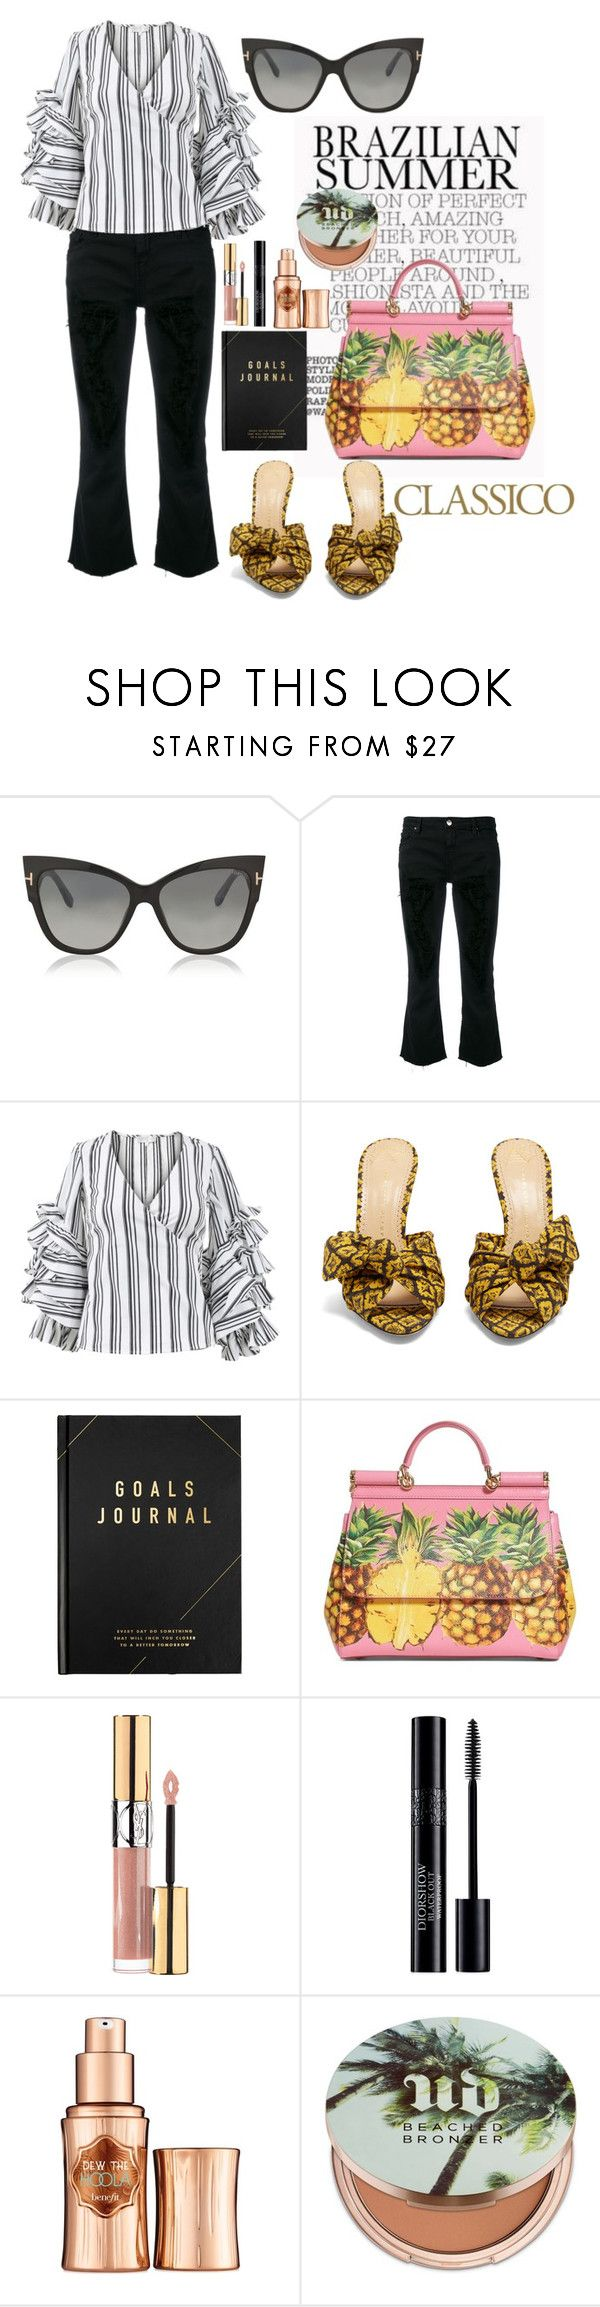 """""""Copacabana"""" by tag-noheuer ❤ liked on Polyvore featuring Tom Ford, IRO, Caroline Constas, Charlotte Olympia, kikki.K, Dolce&Gabbana, Yves Saint Laurent, Christian Dior, Benefit and Urban Decay"""